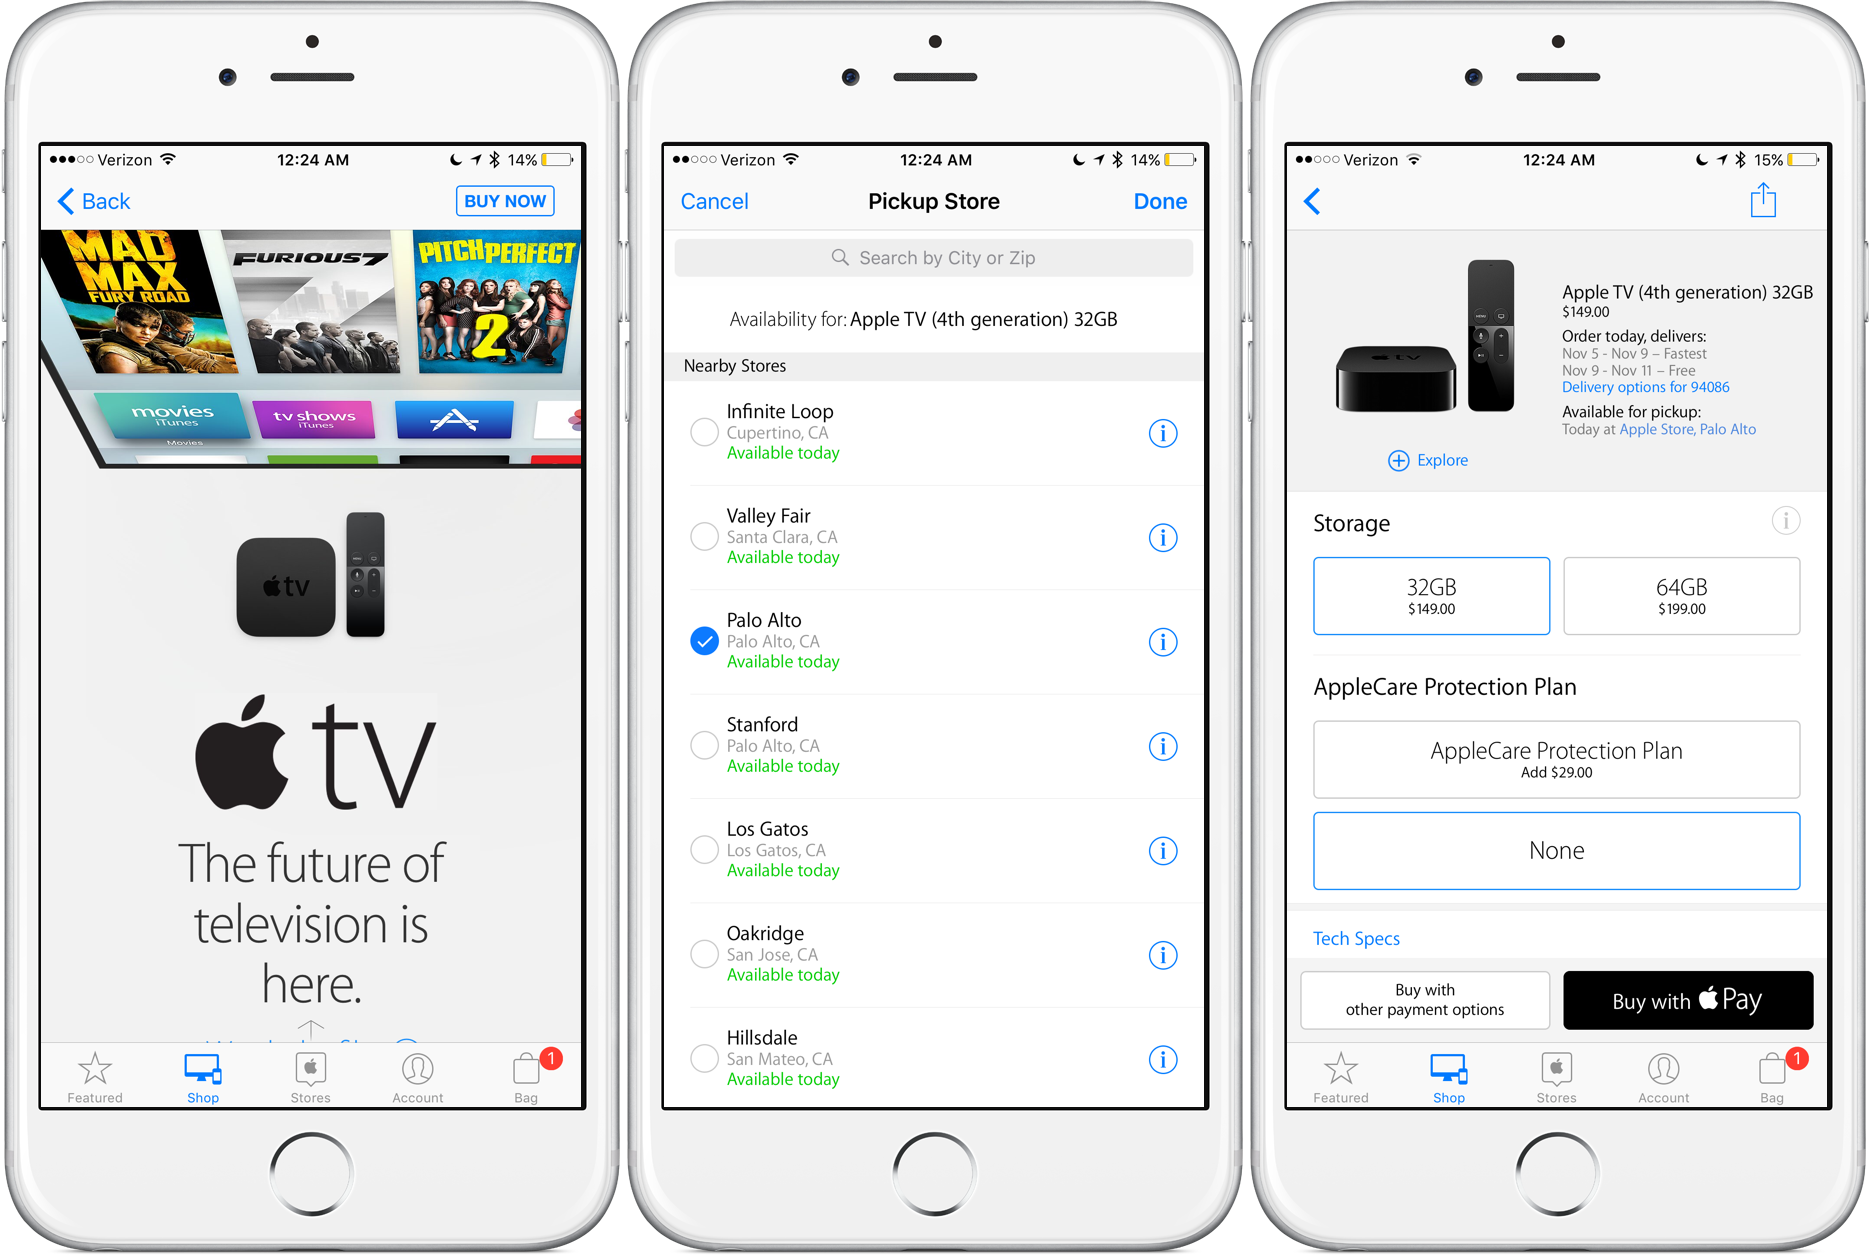 You can order an Apple TV online and pick it up in-store.